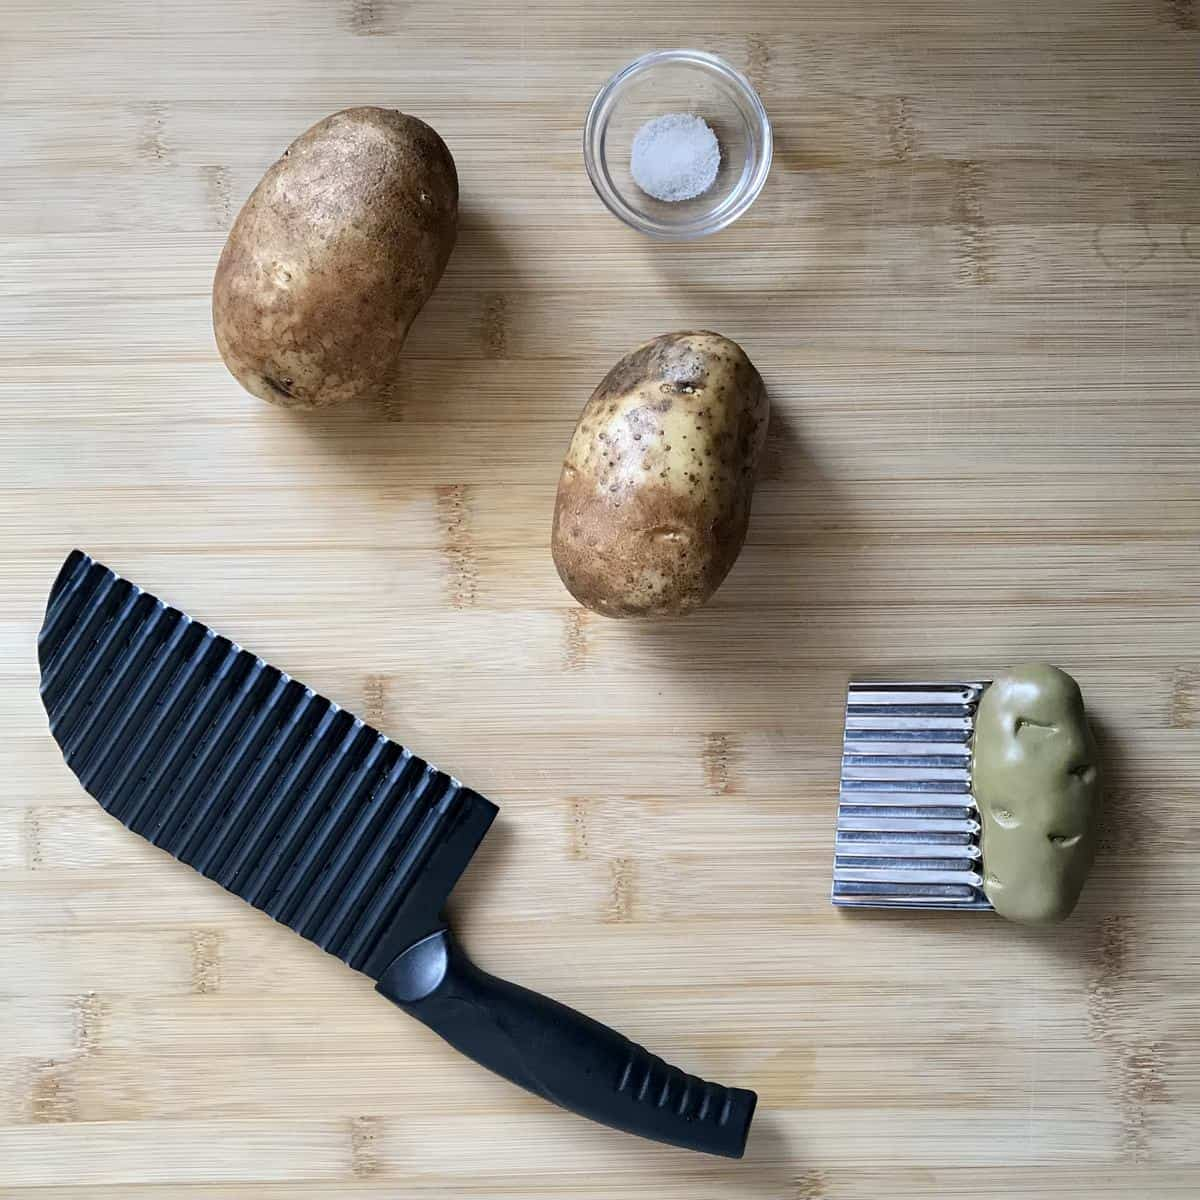 Crinkle cut knives and russet potatoes on a wooden board.